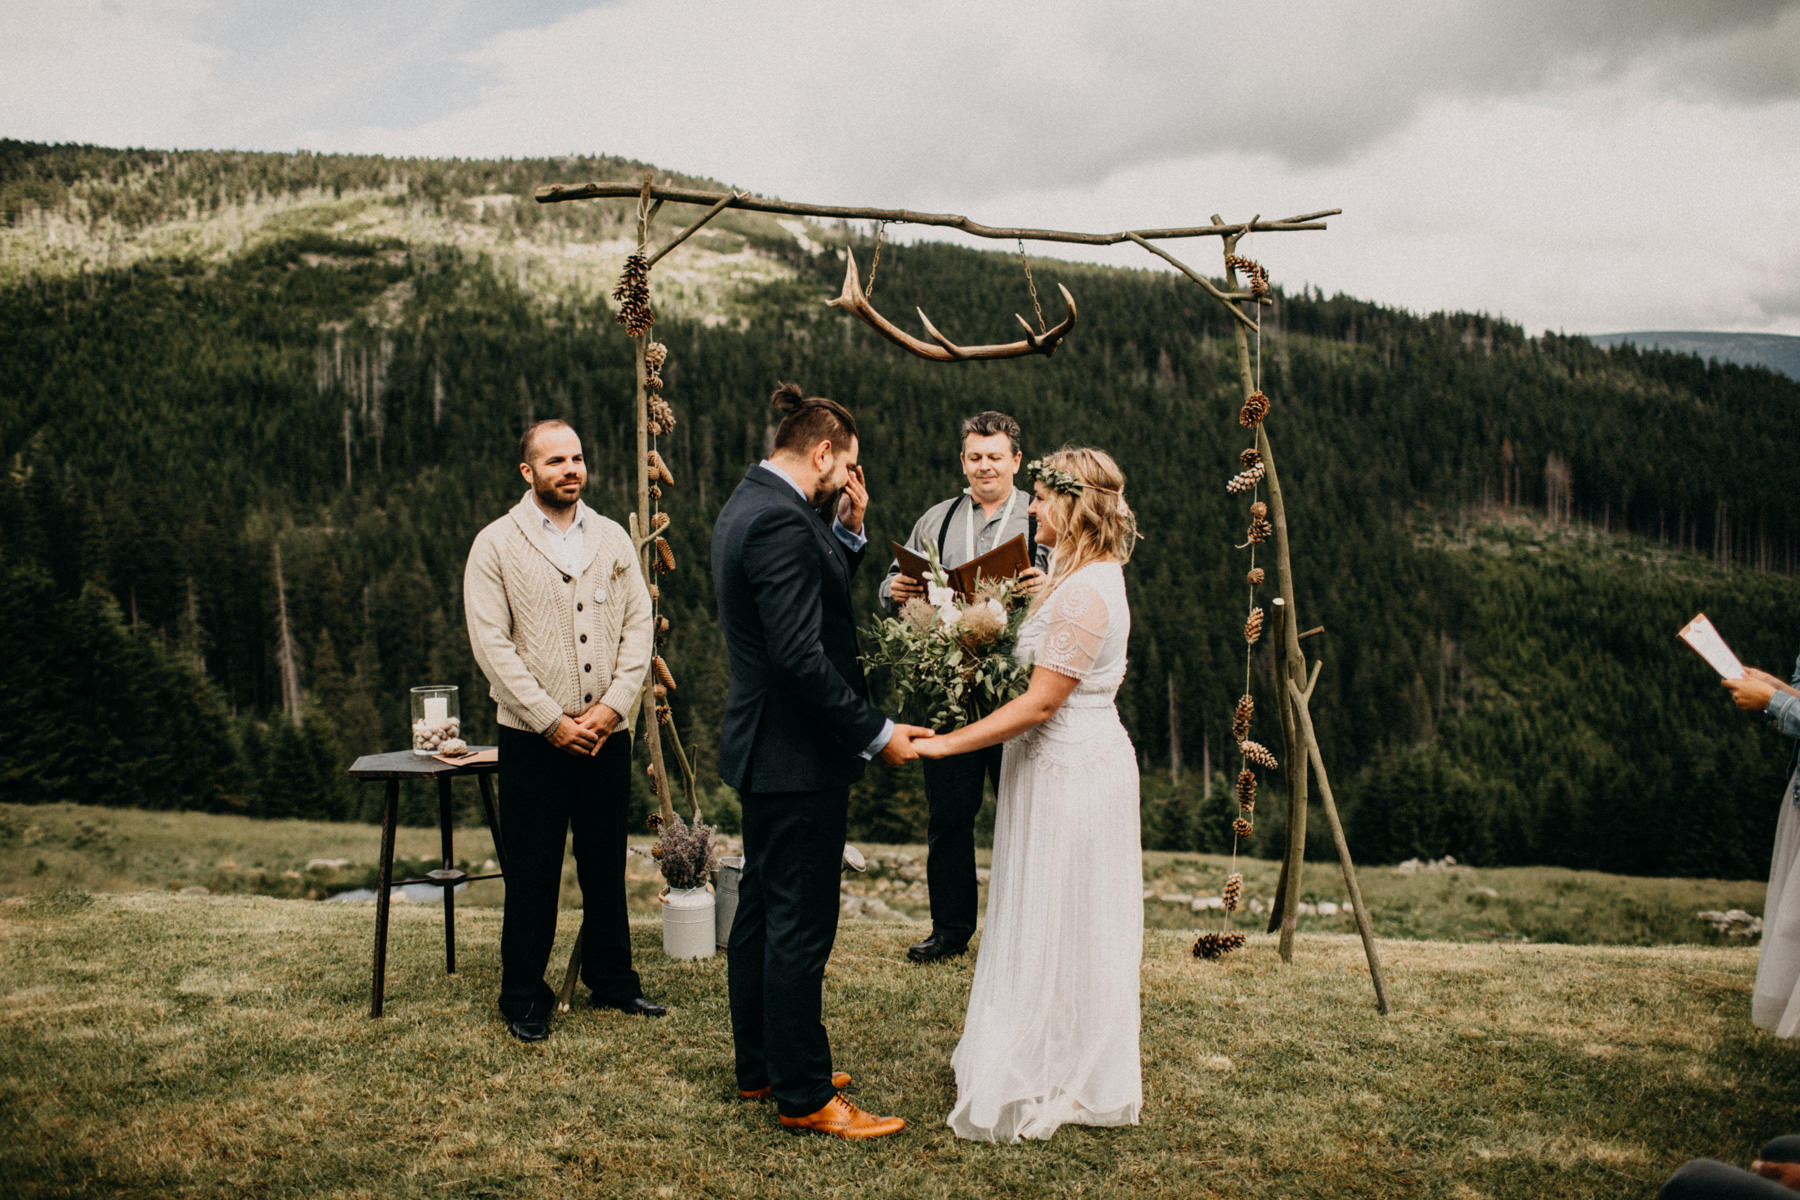 ceremony in mountains